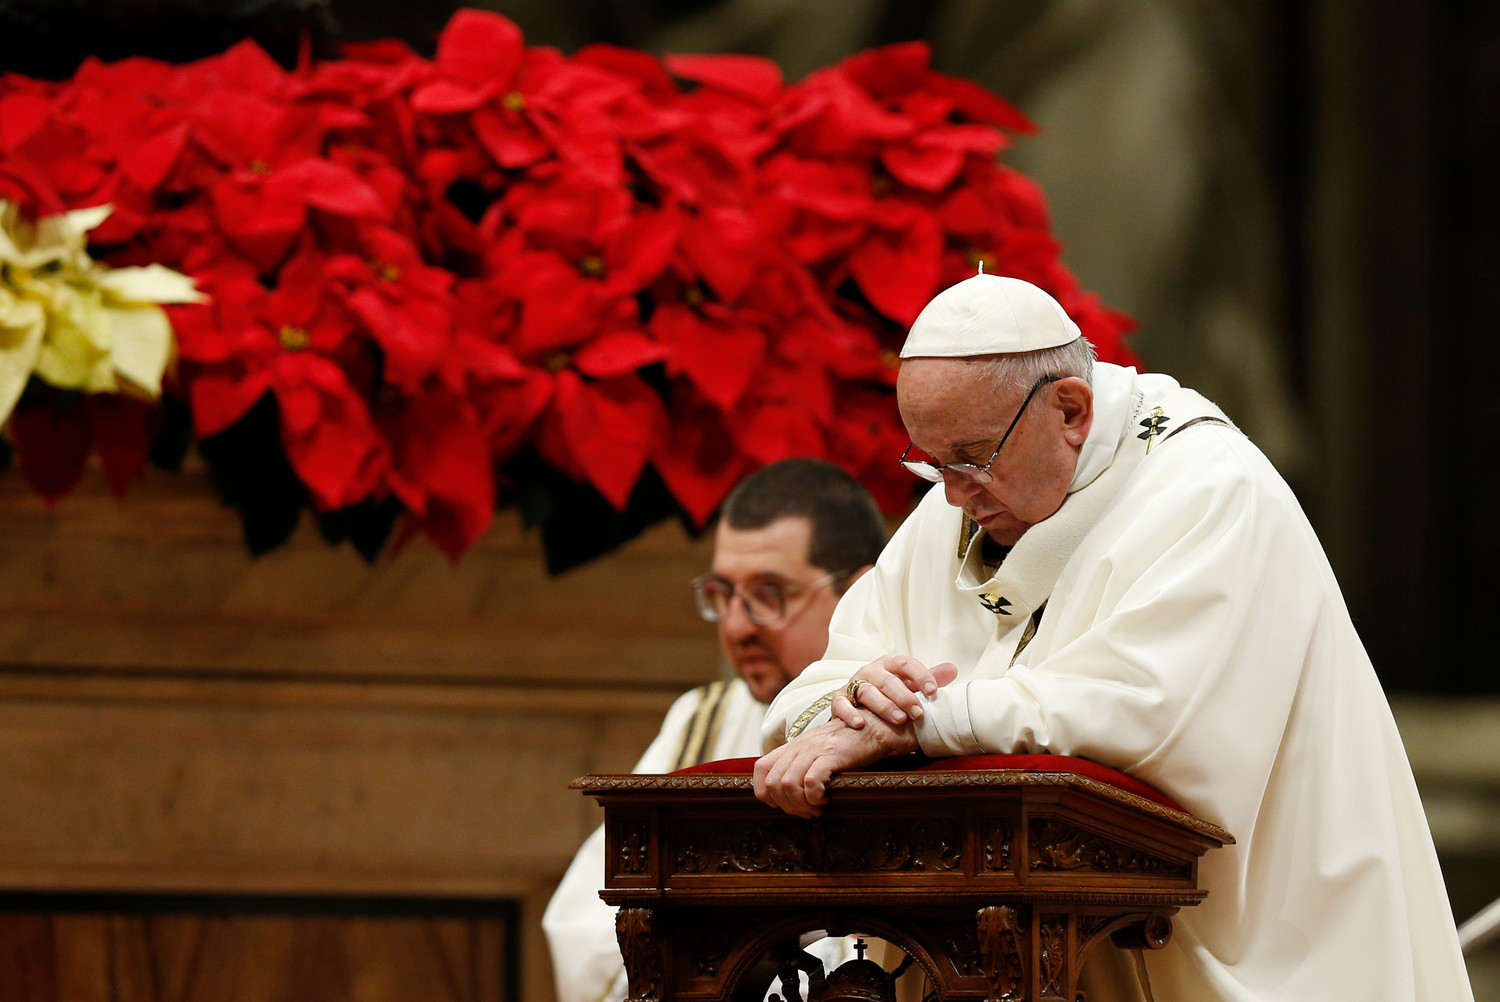 Pope Francis kneels in prayer as he celebrates Christmas Eve Mass in St. Peter's Basilica at the Vatican Dec. 24.